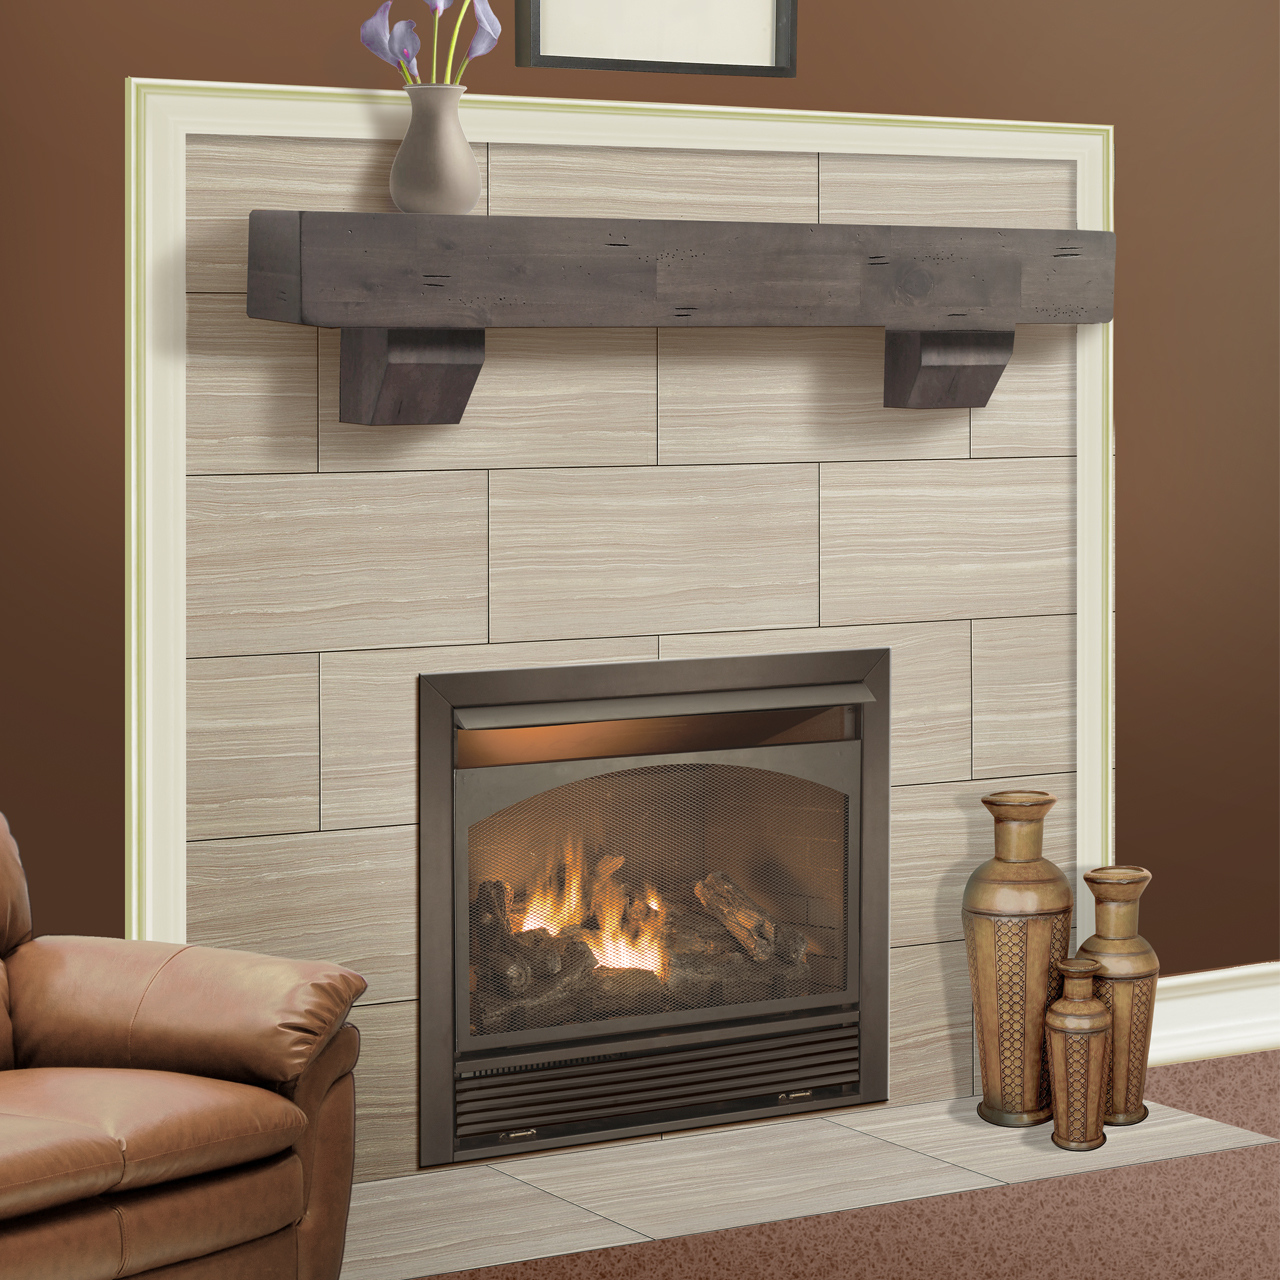 Duluth Forge Dual Fuel Ventless Fireplace Insert 32 000 Btu